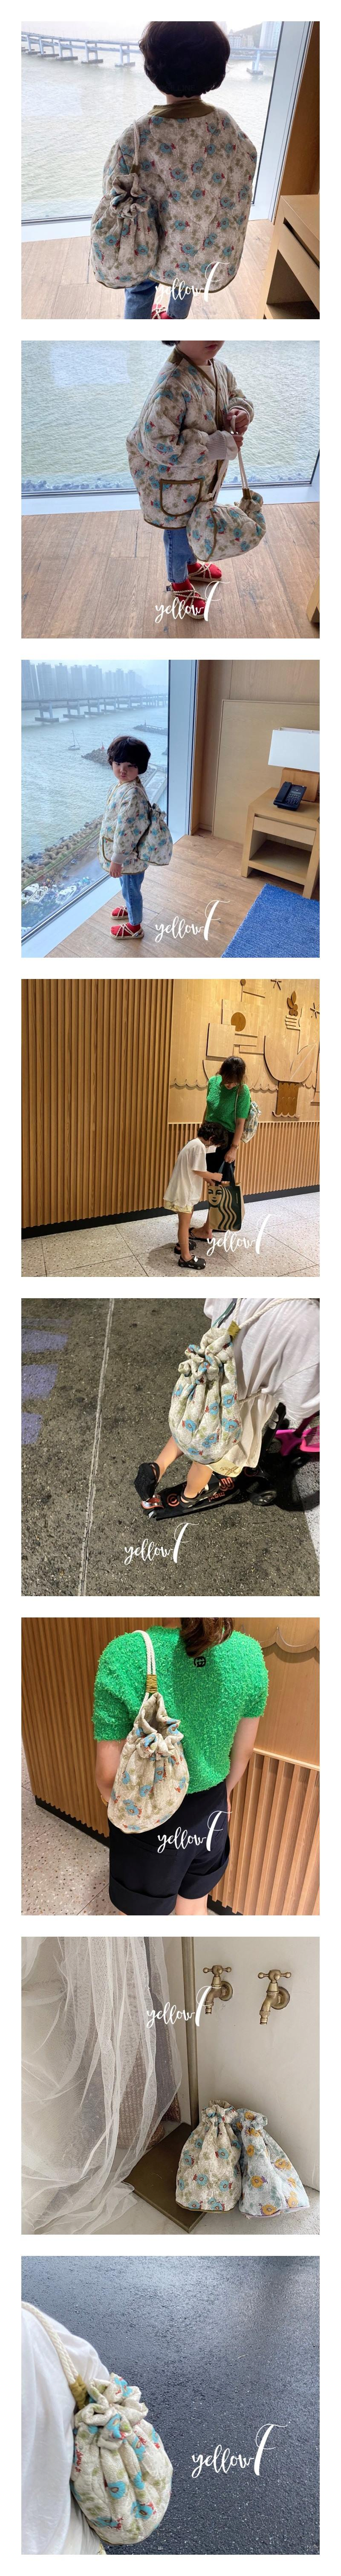 YELLOW FACTORY - Korean Children Fashion - #Kfashion4kids - End Bag